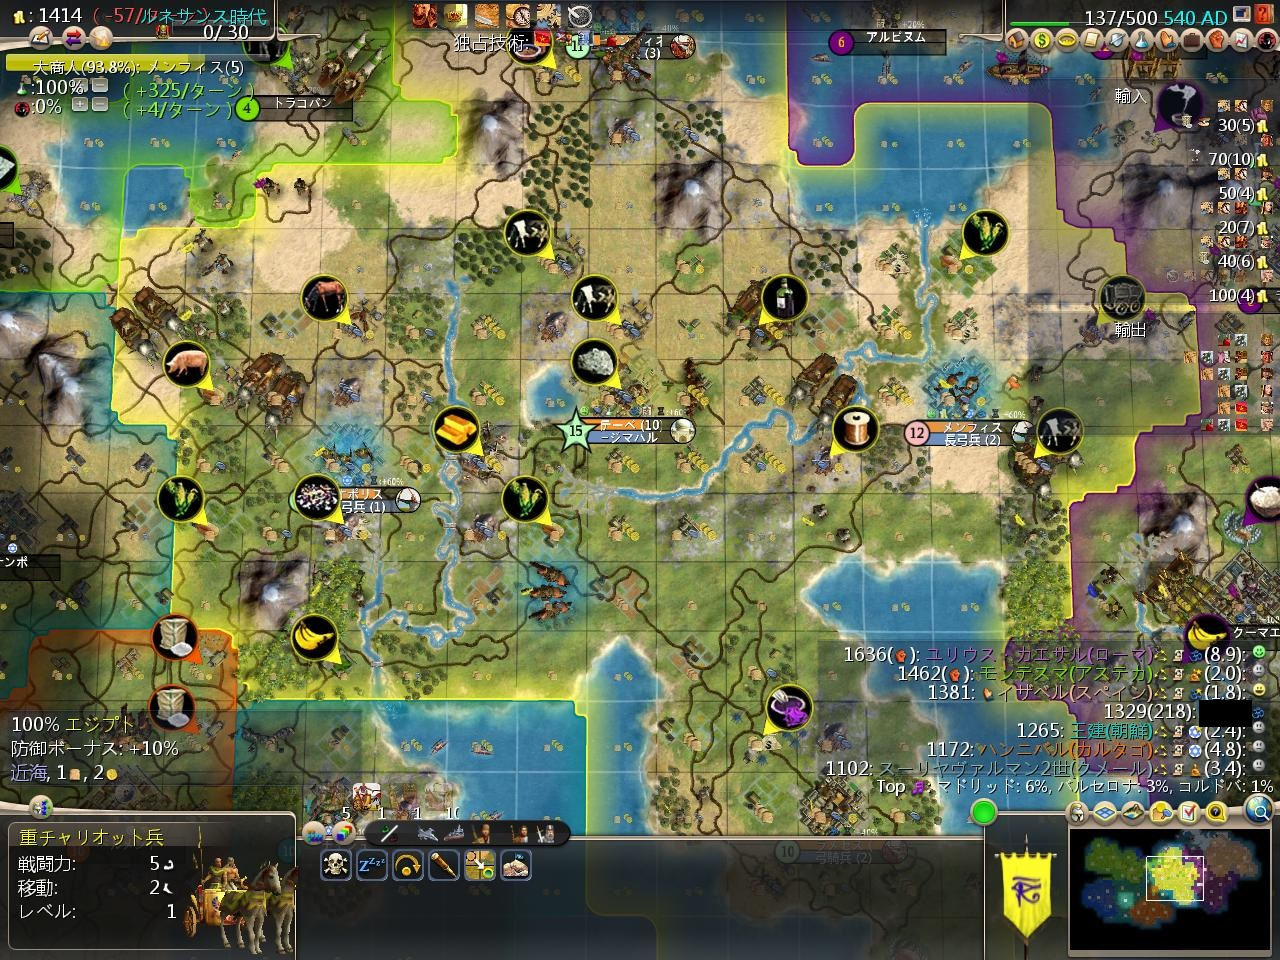 Civ4ScreenShot2139.JPG